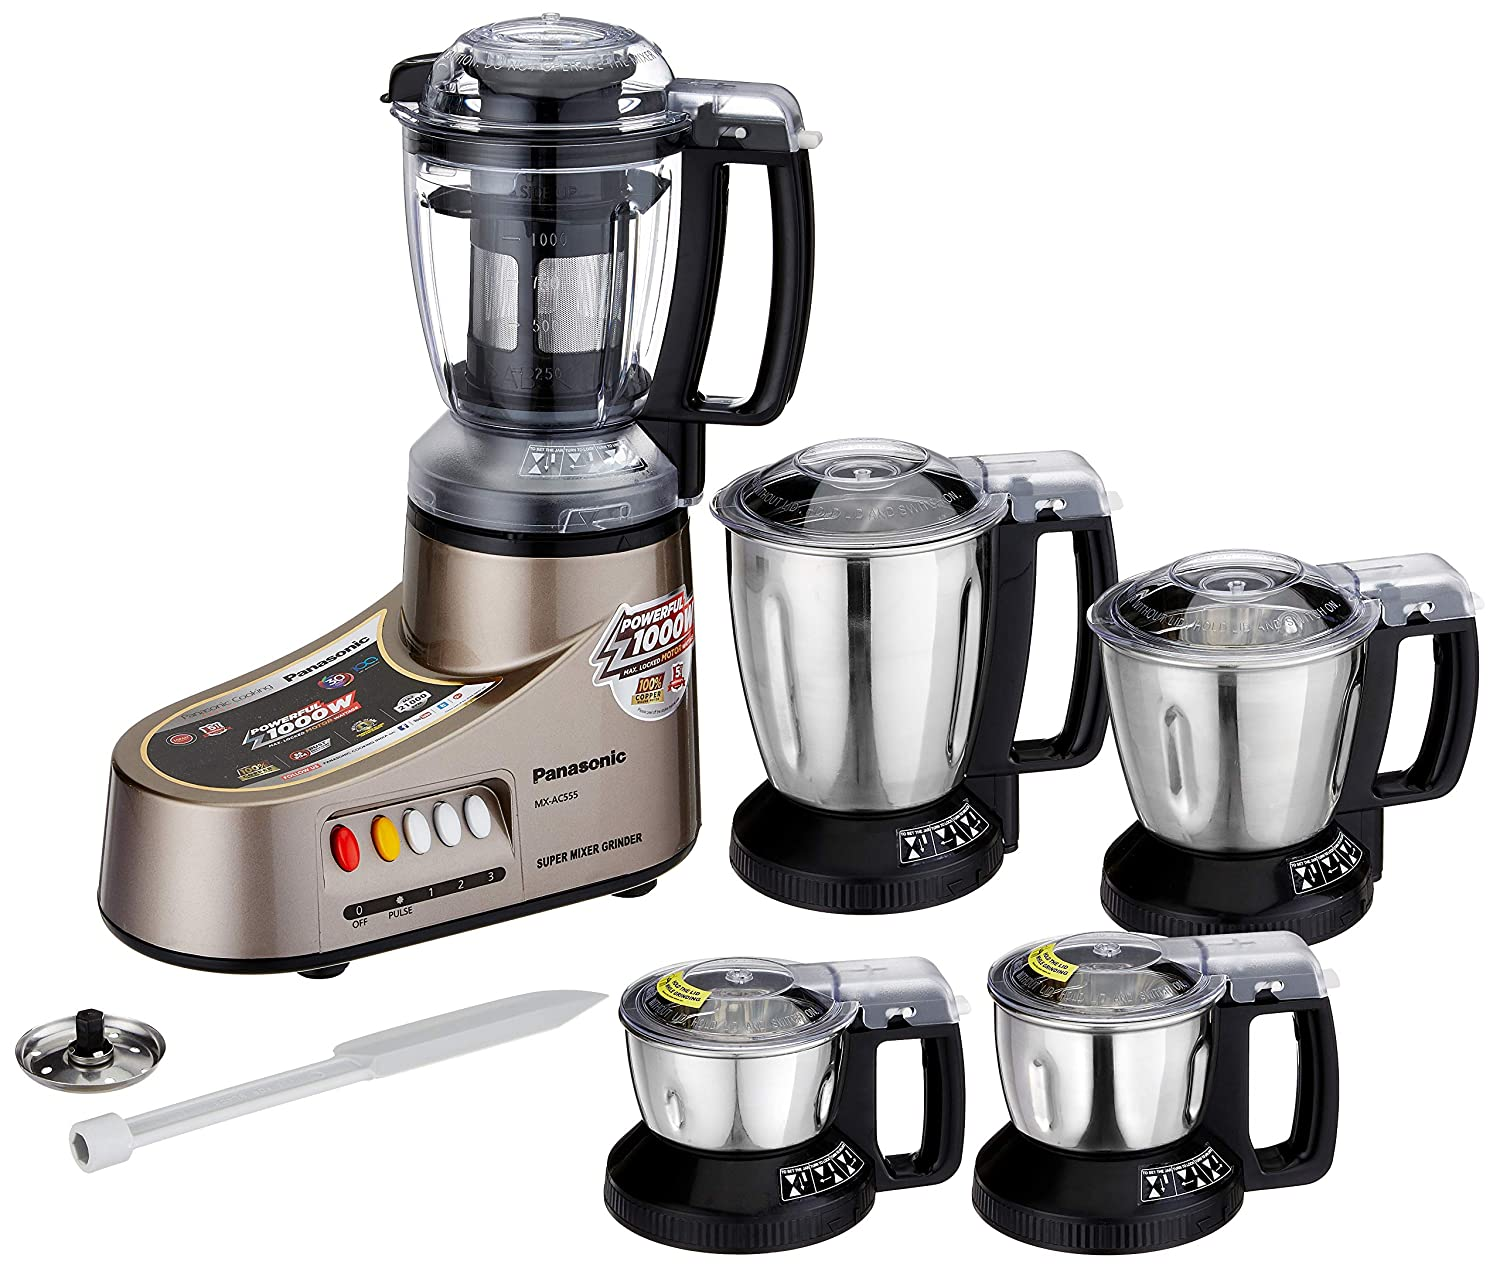 Buy Panasonic Mx Ac555 New 550 Watt Mixer Grinder With 5 Jars Wiring Devices Philippines Bronze Online At Low Prices In India